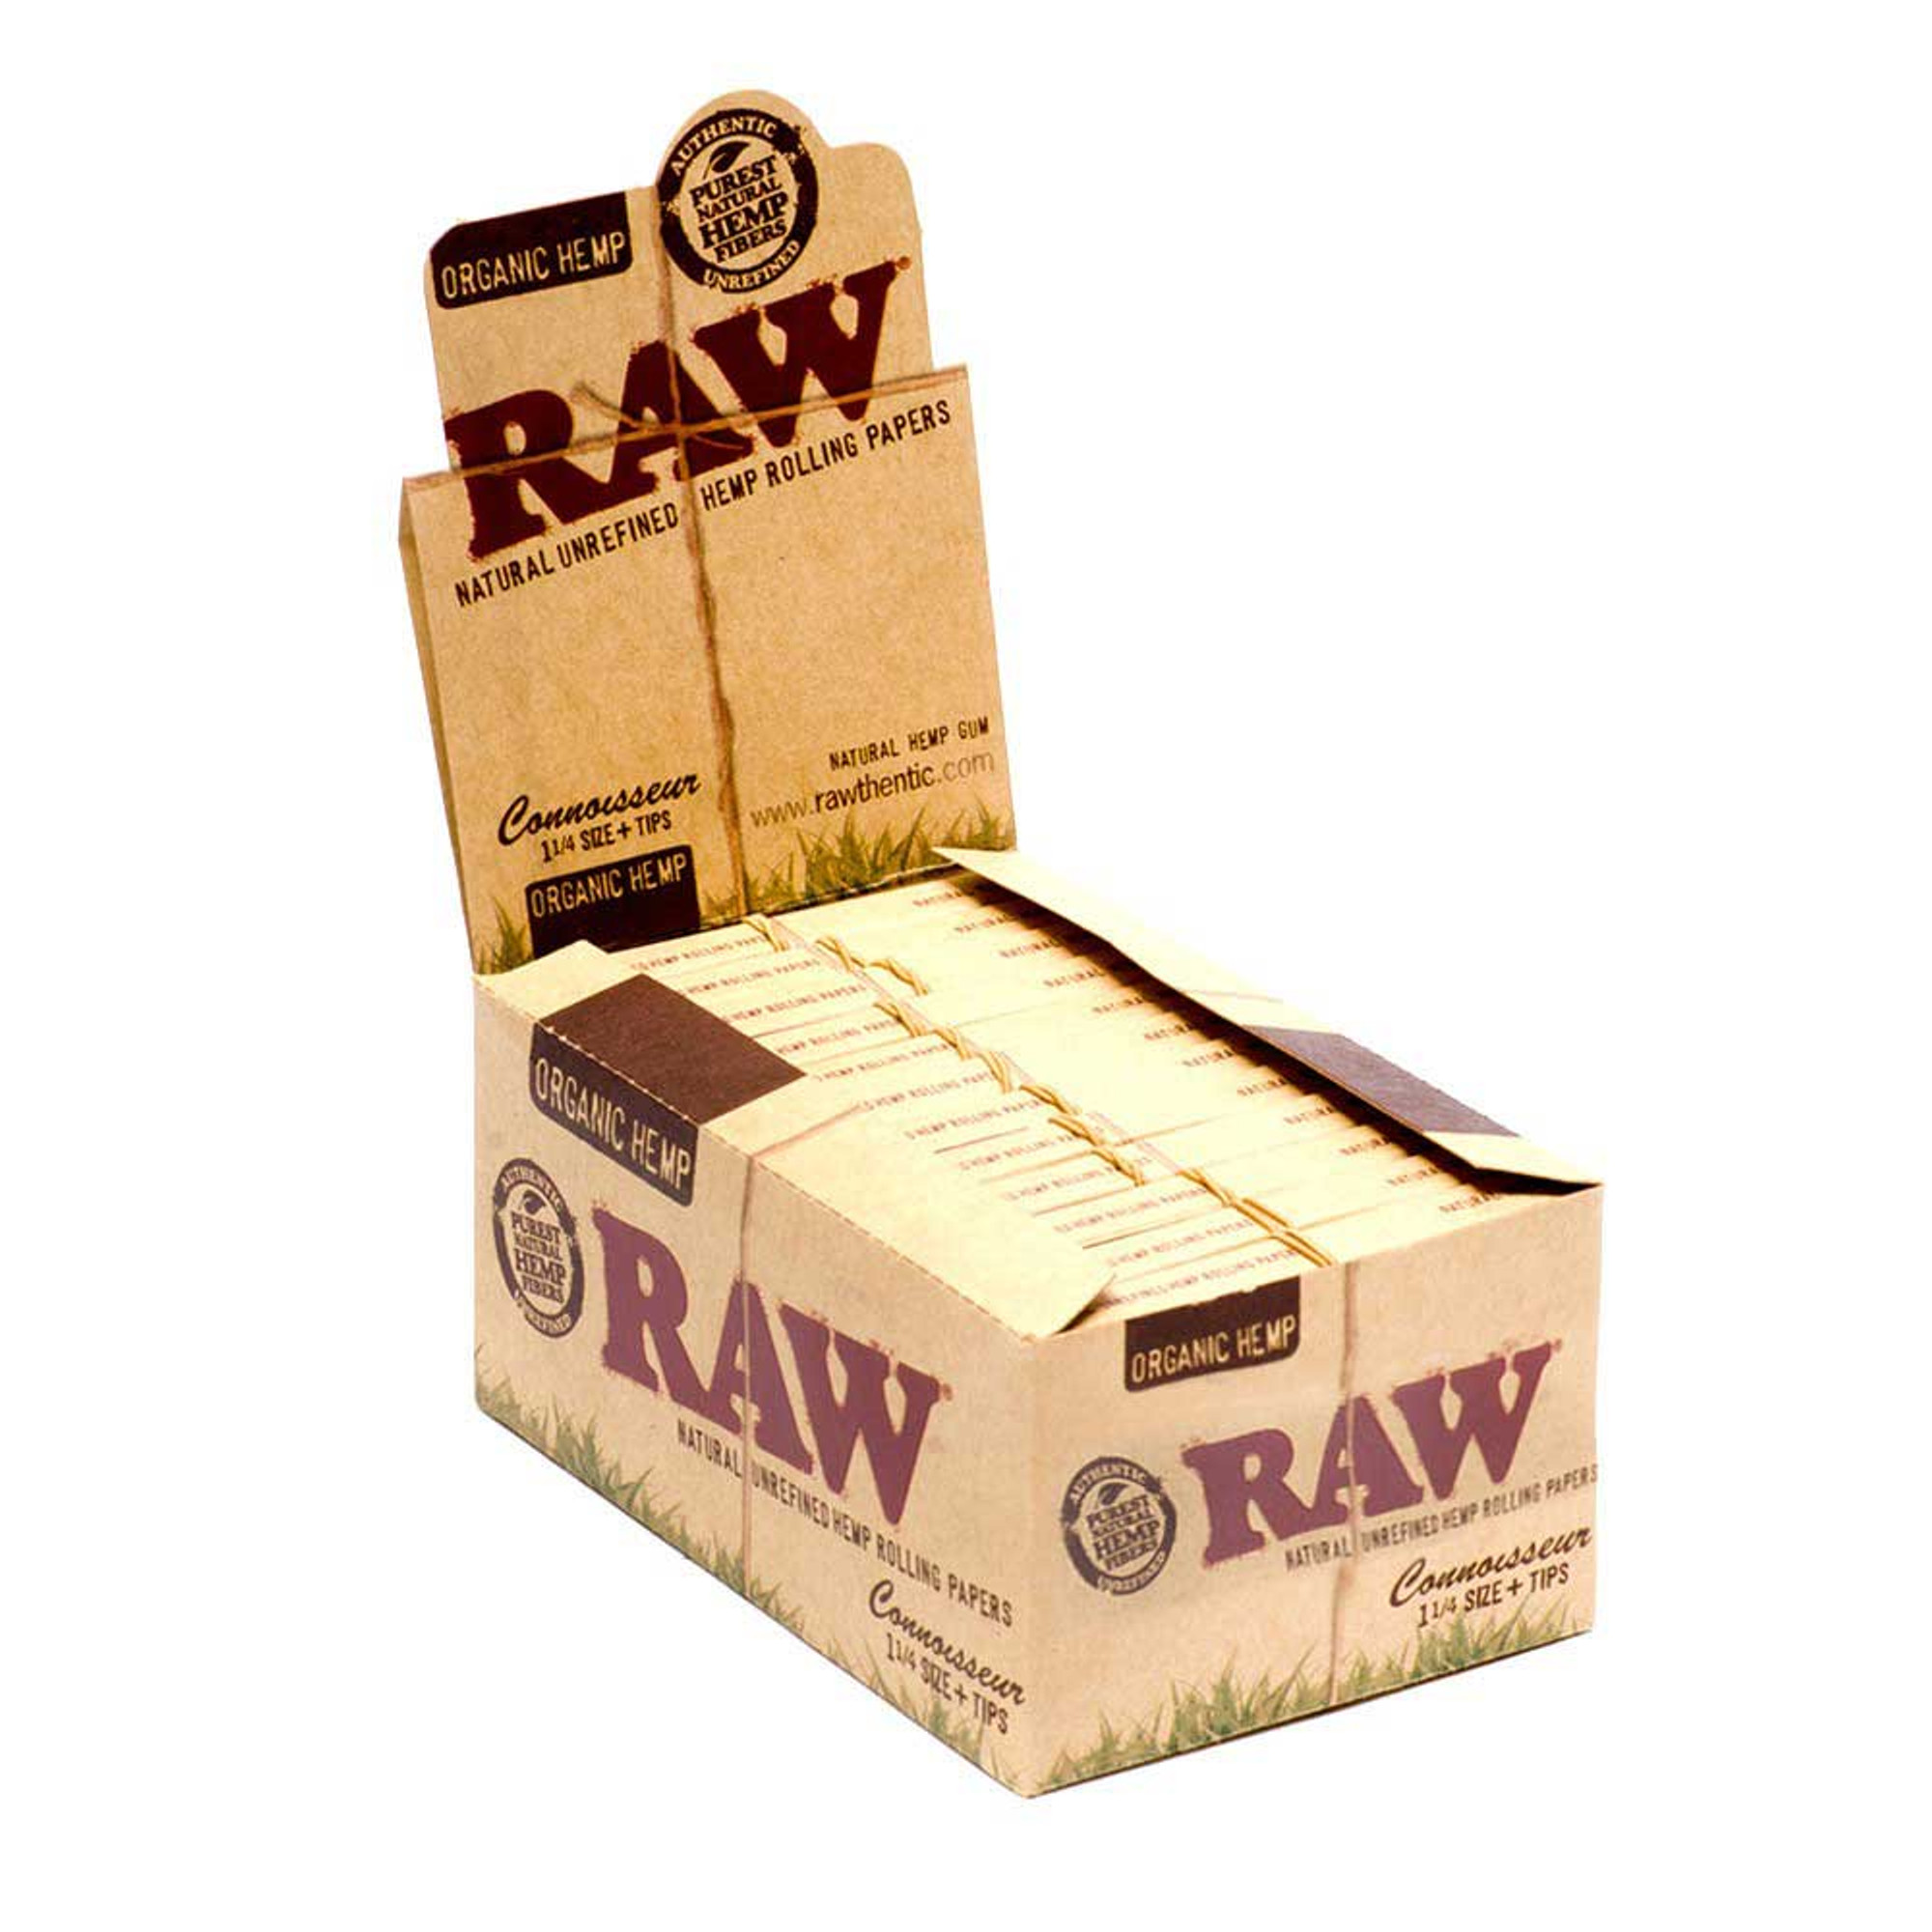 RAW Organic Hemp 1 1//4 Natural Unrefined Rolling Papers 5 Booklets